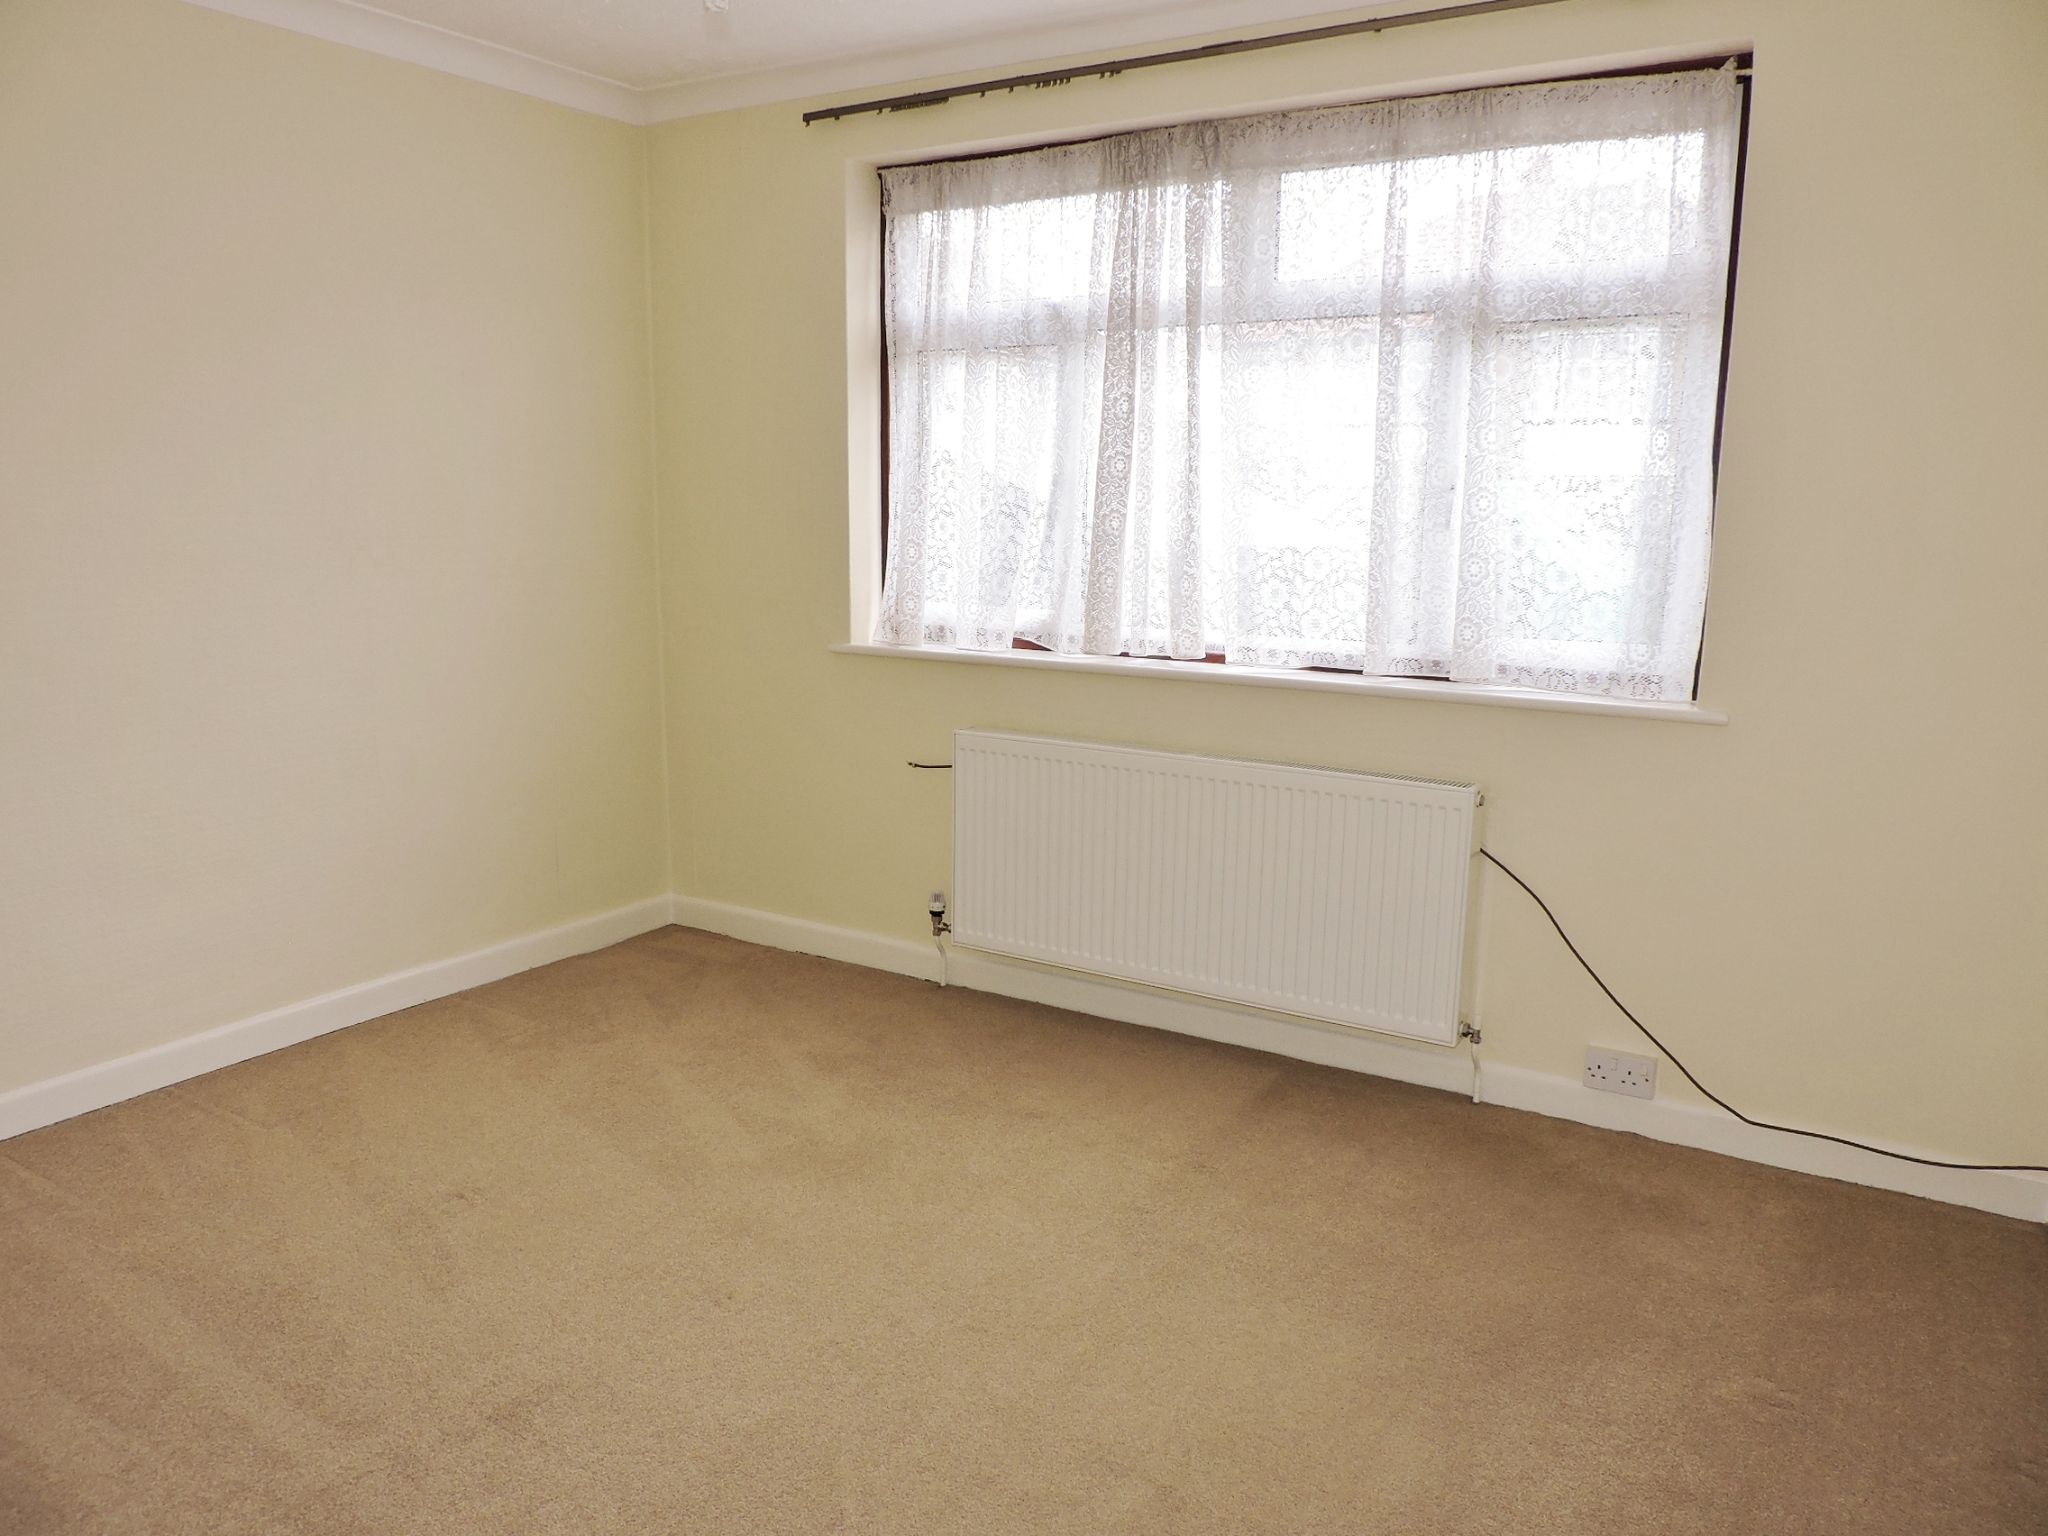 2 bedroom semi-detached bungalow Let in Epsom - Photograph 9